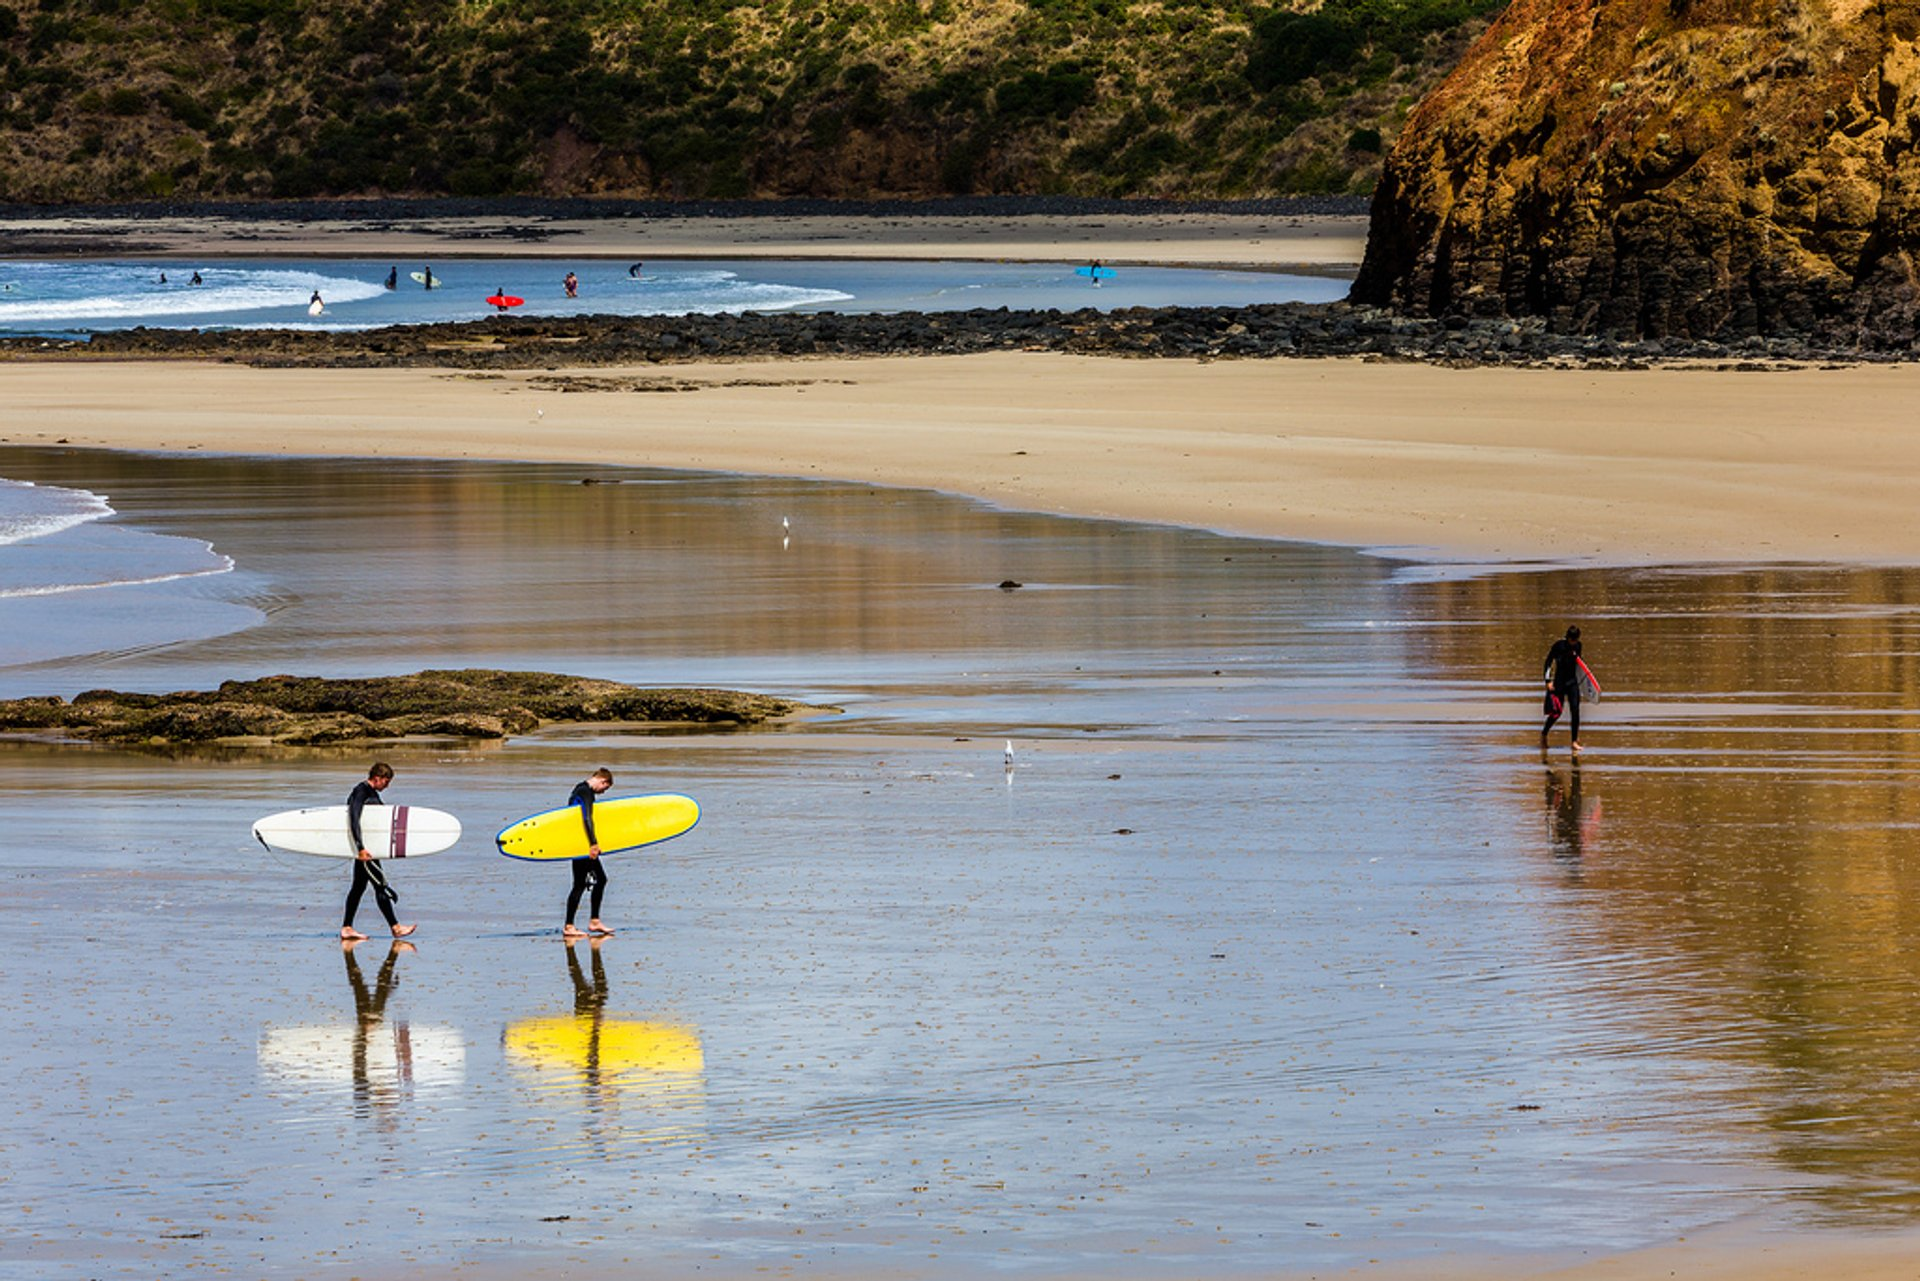 Retiring surfers down at Smiths Beach, Phillip Island, last Summer 2020